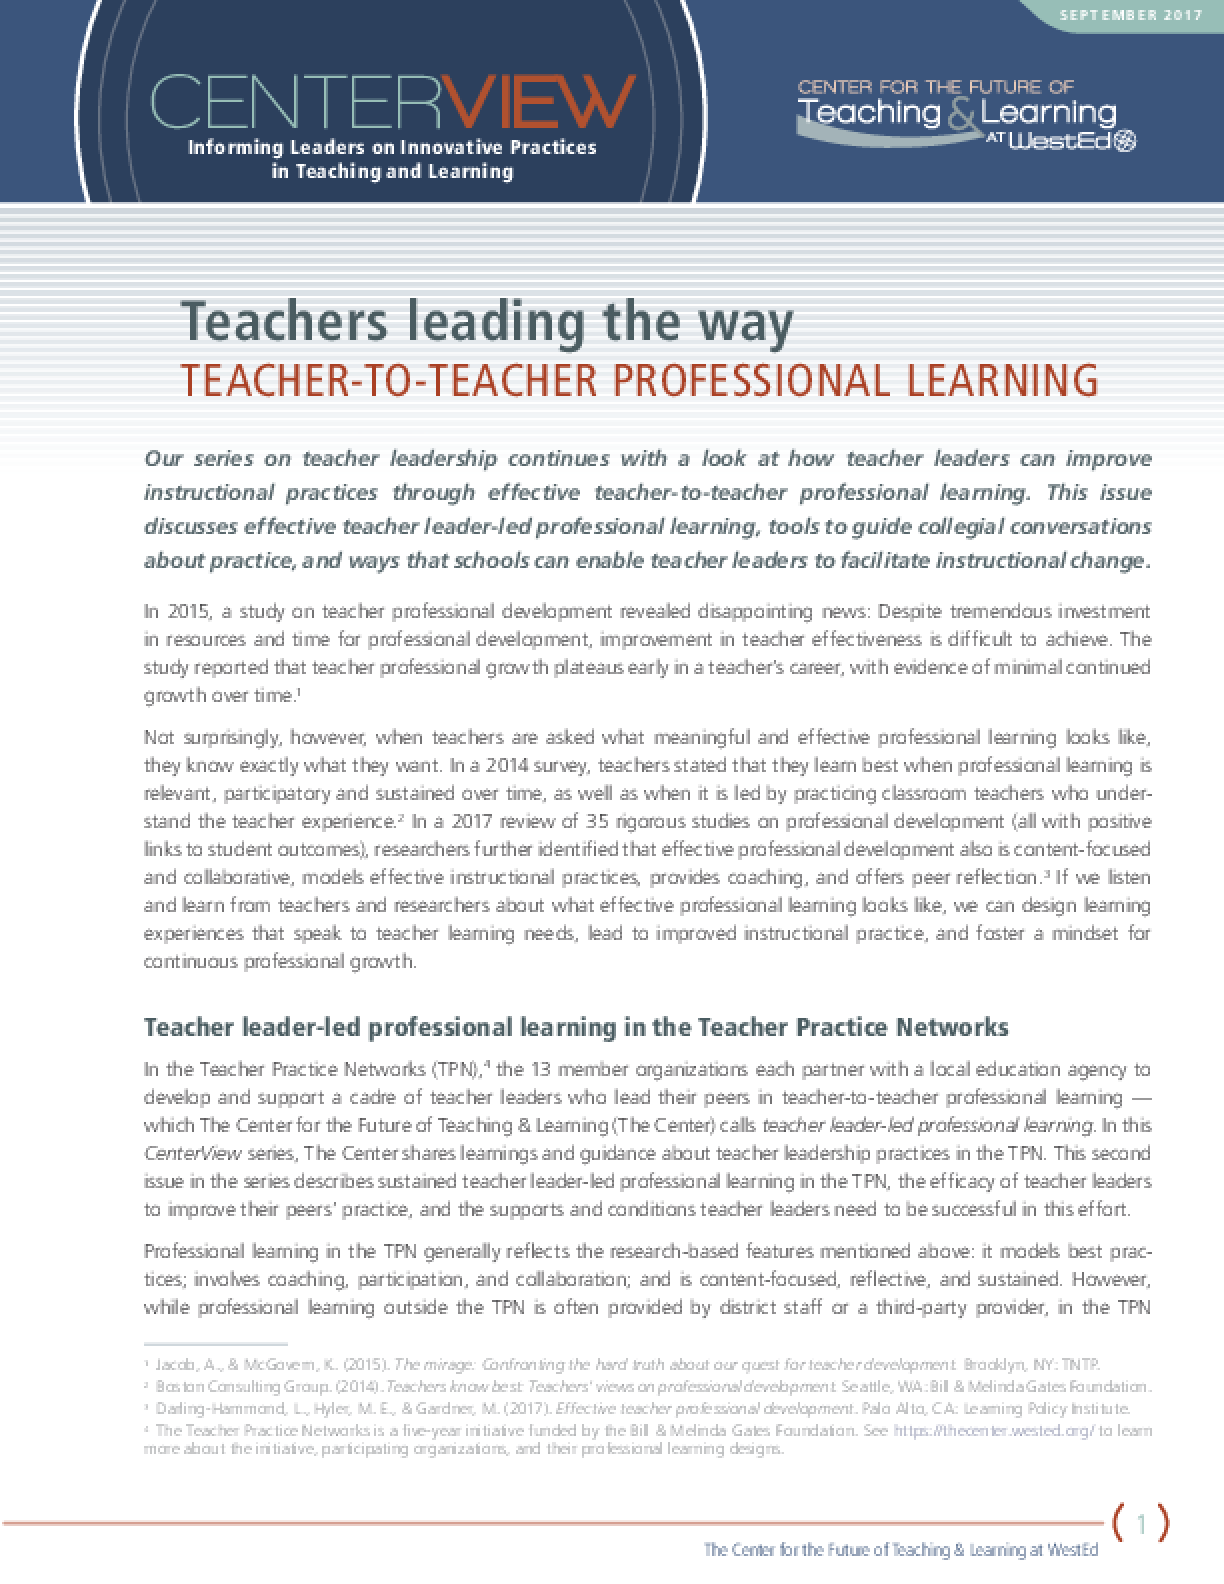 CenterView: Teachers Leading the Way ? Teacher-to-Teacher Professional Learning